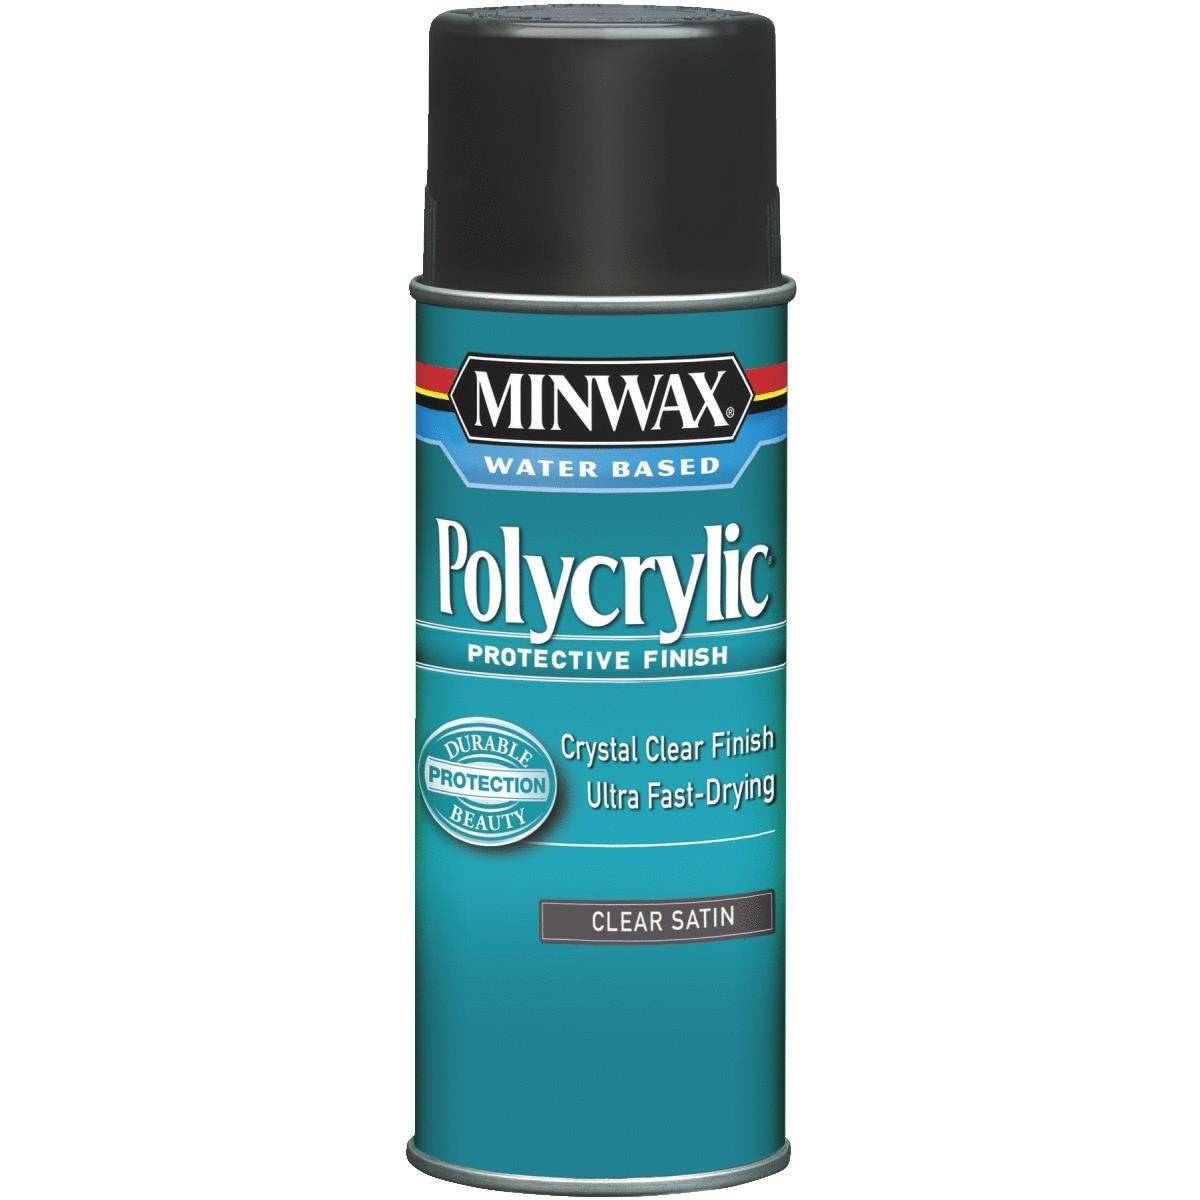 Minwax Polycrylic Water-Based Spray - Clear Satin, 11.5oz